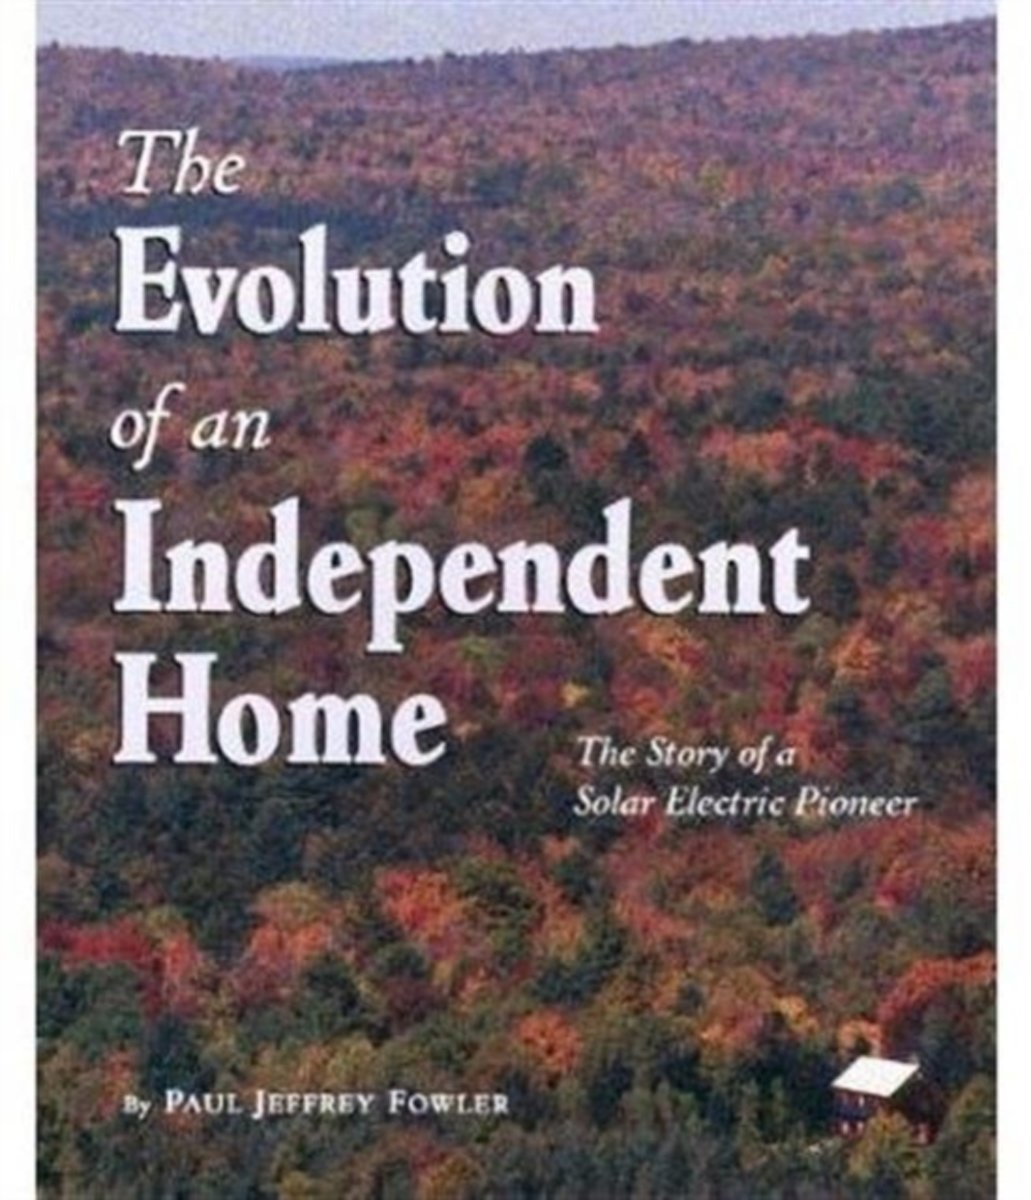 Evolution of an Independent Home